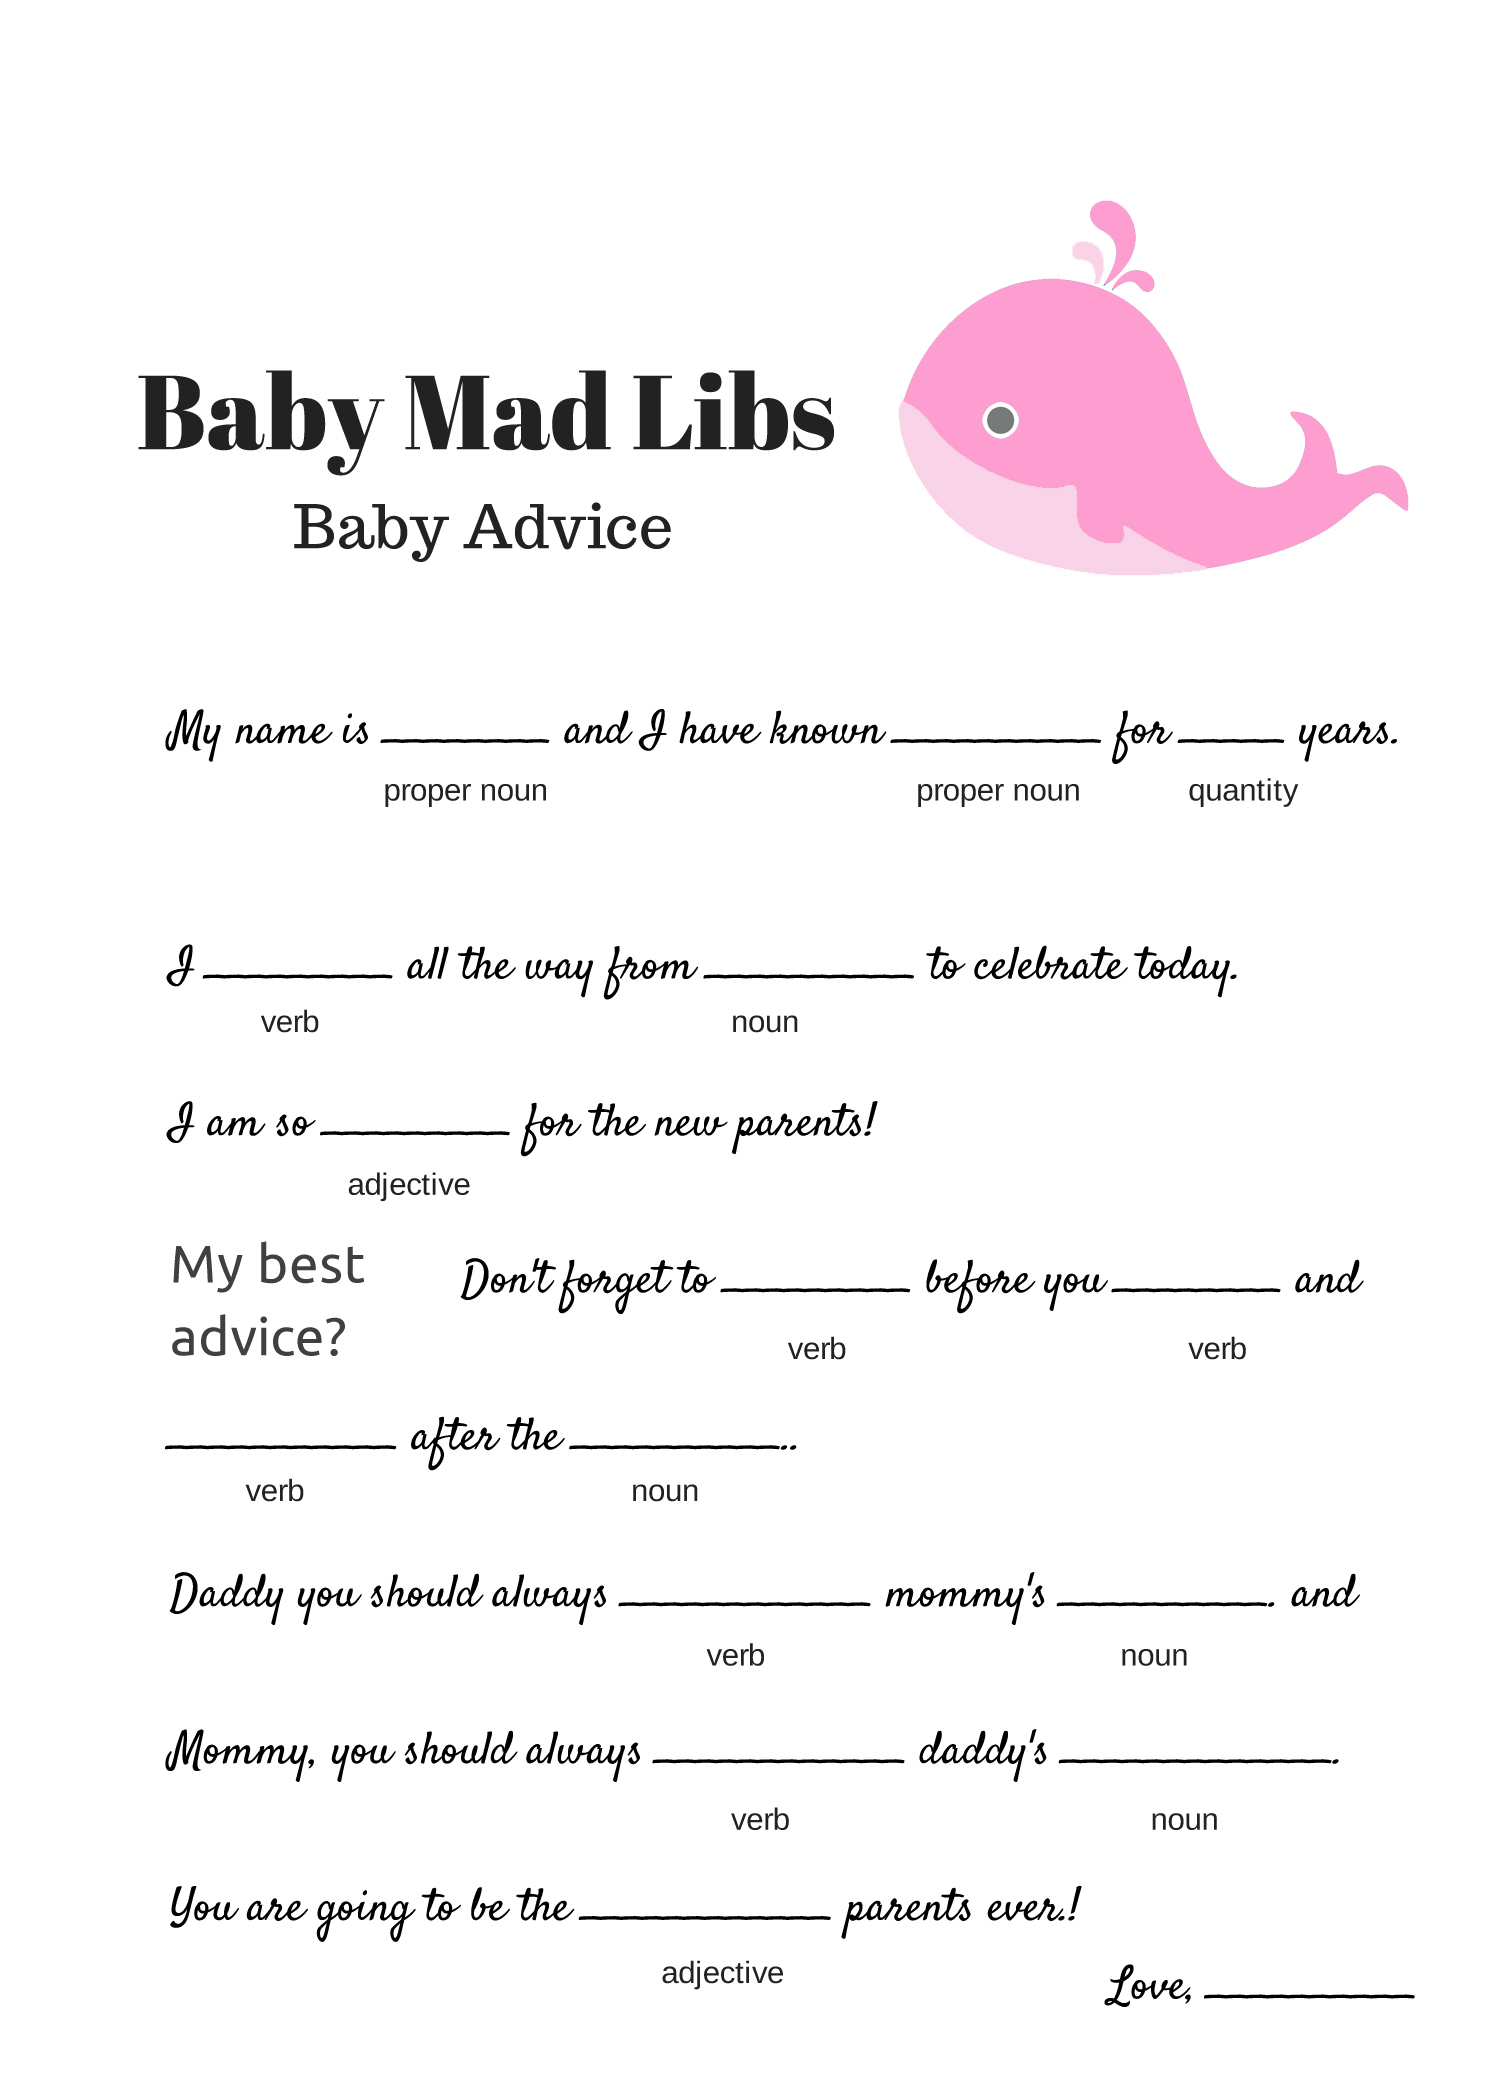 FREE Baby Mad Libs Game - Baby Advice - Baby Shower Ideas - Themes - Games